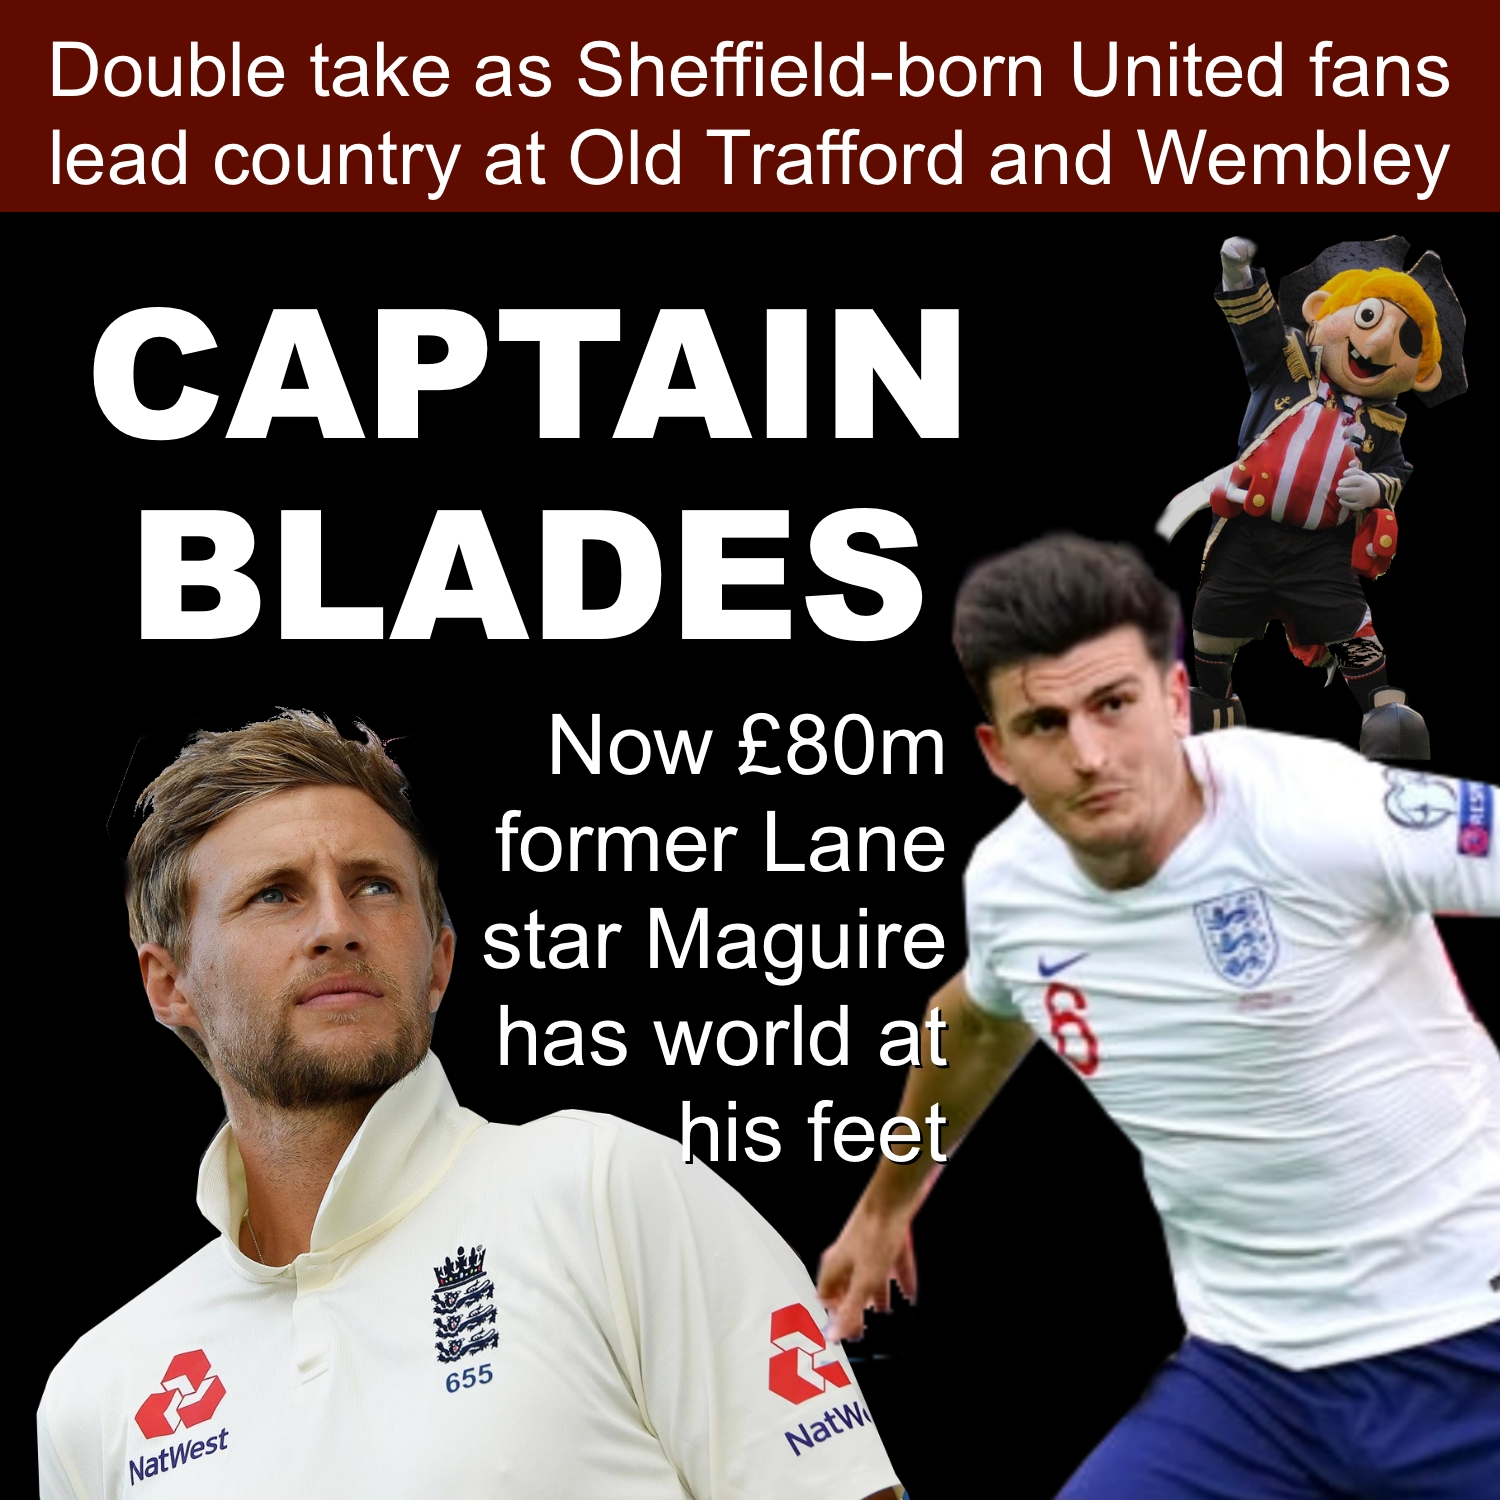 England's Captain Blades remarkable double act for city of Sheffield.